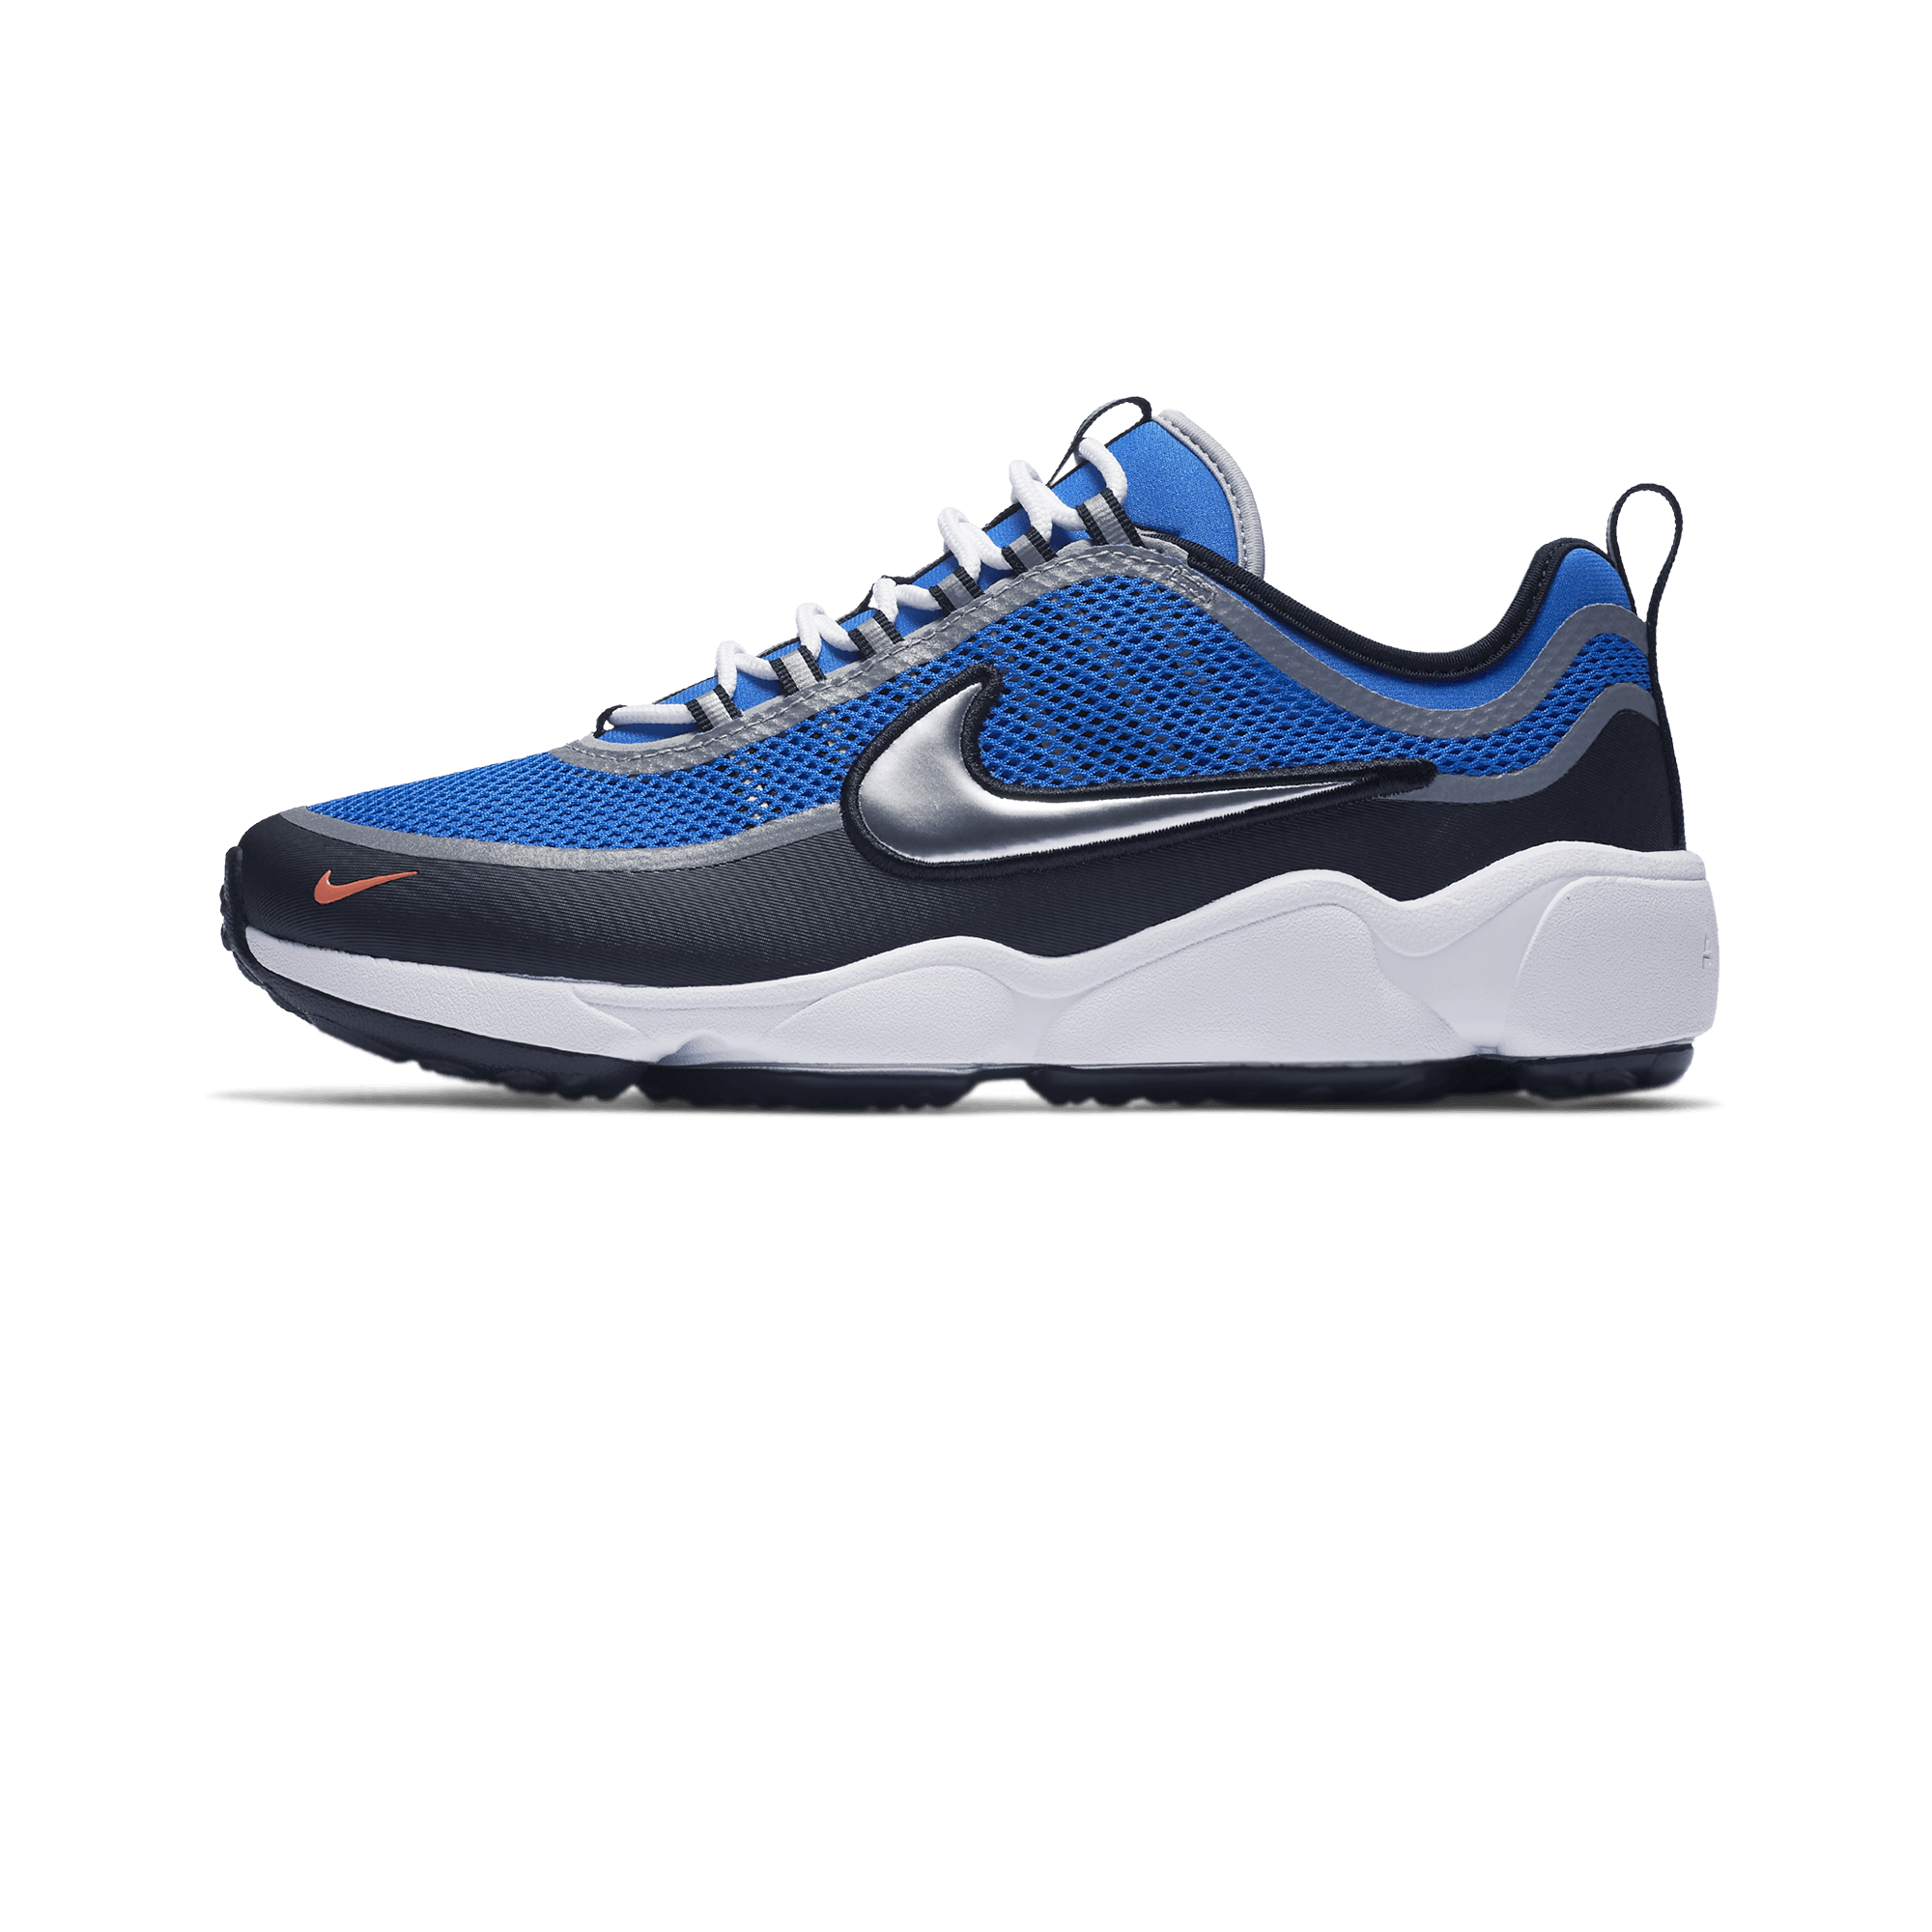 Air Zoom Spiridon Ultra OG regal blue/black